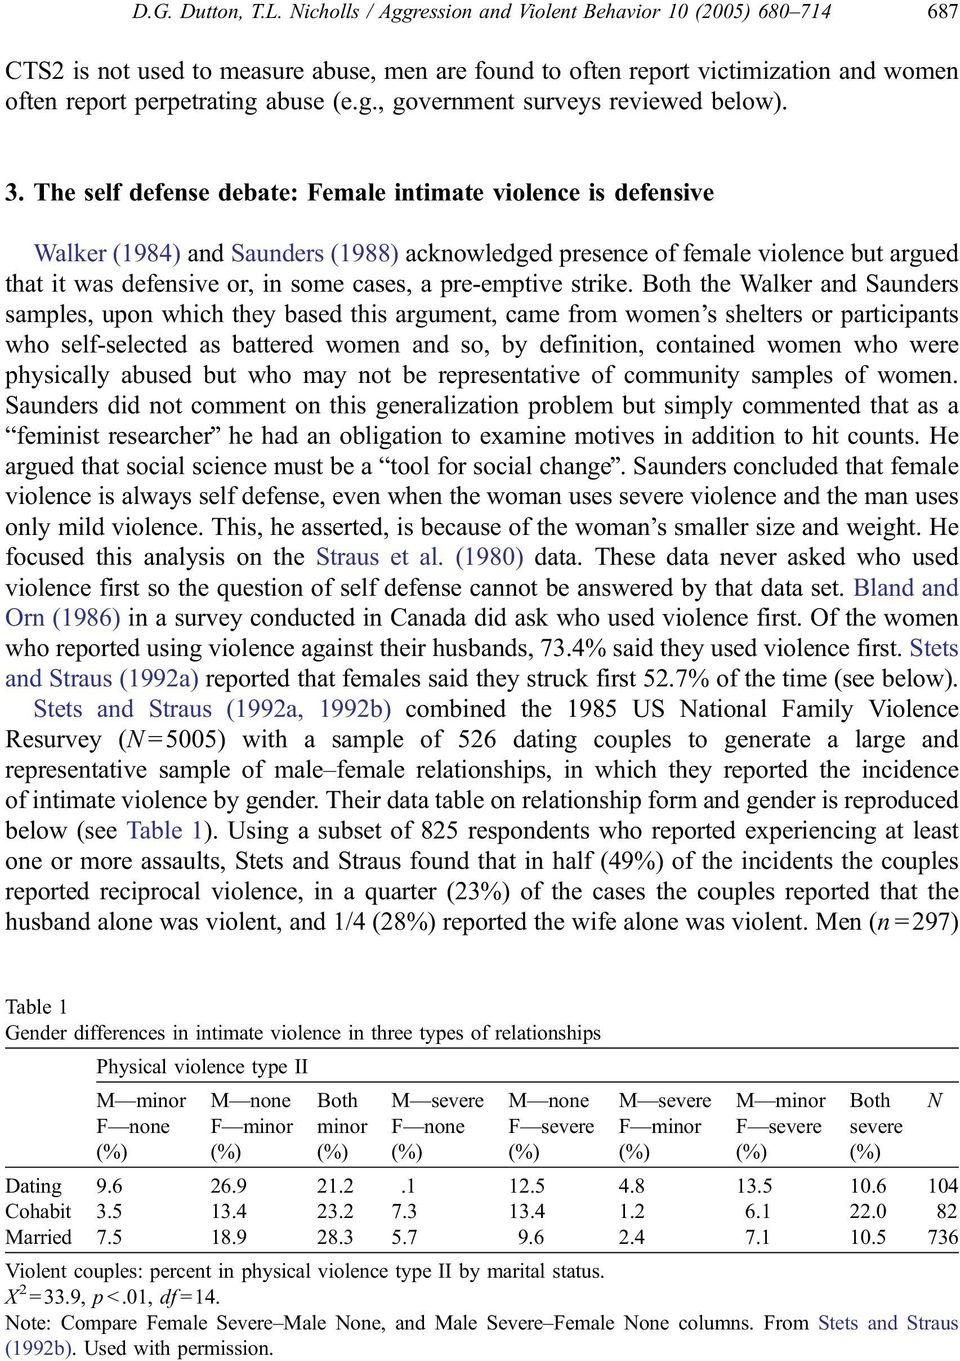 3. The self defense debate: Female intimate violence is defensive Walker (1984) and Saunders (1988) acknowledged presence of female violence but argued that it was defensive or, in some cases, a